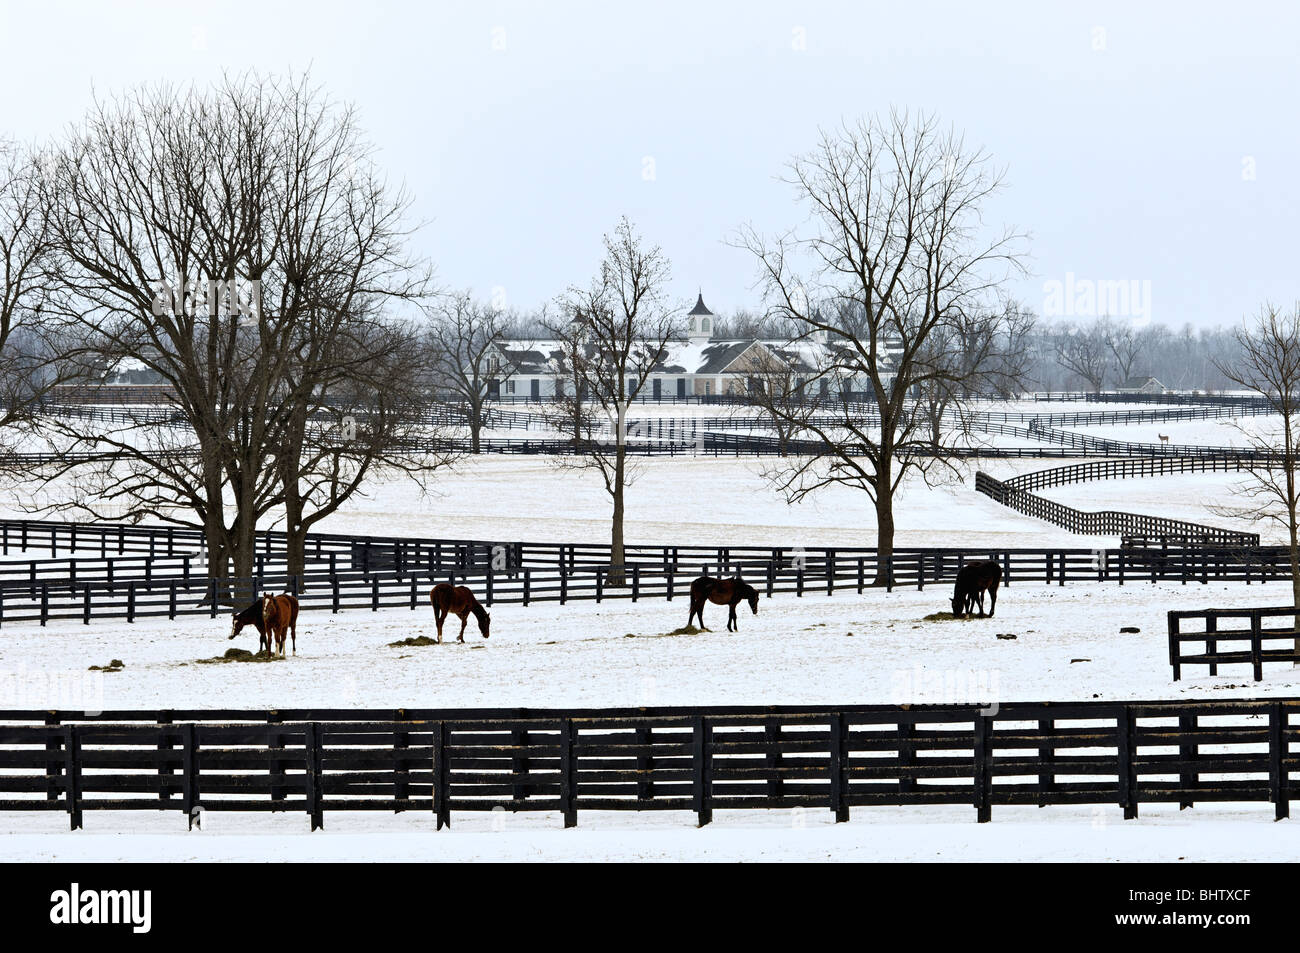 Thoroughbred Horses in Snow Covered Paddock in Woodford County, Kentucky - Stock Image